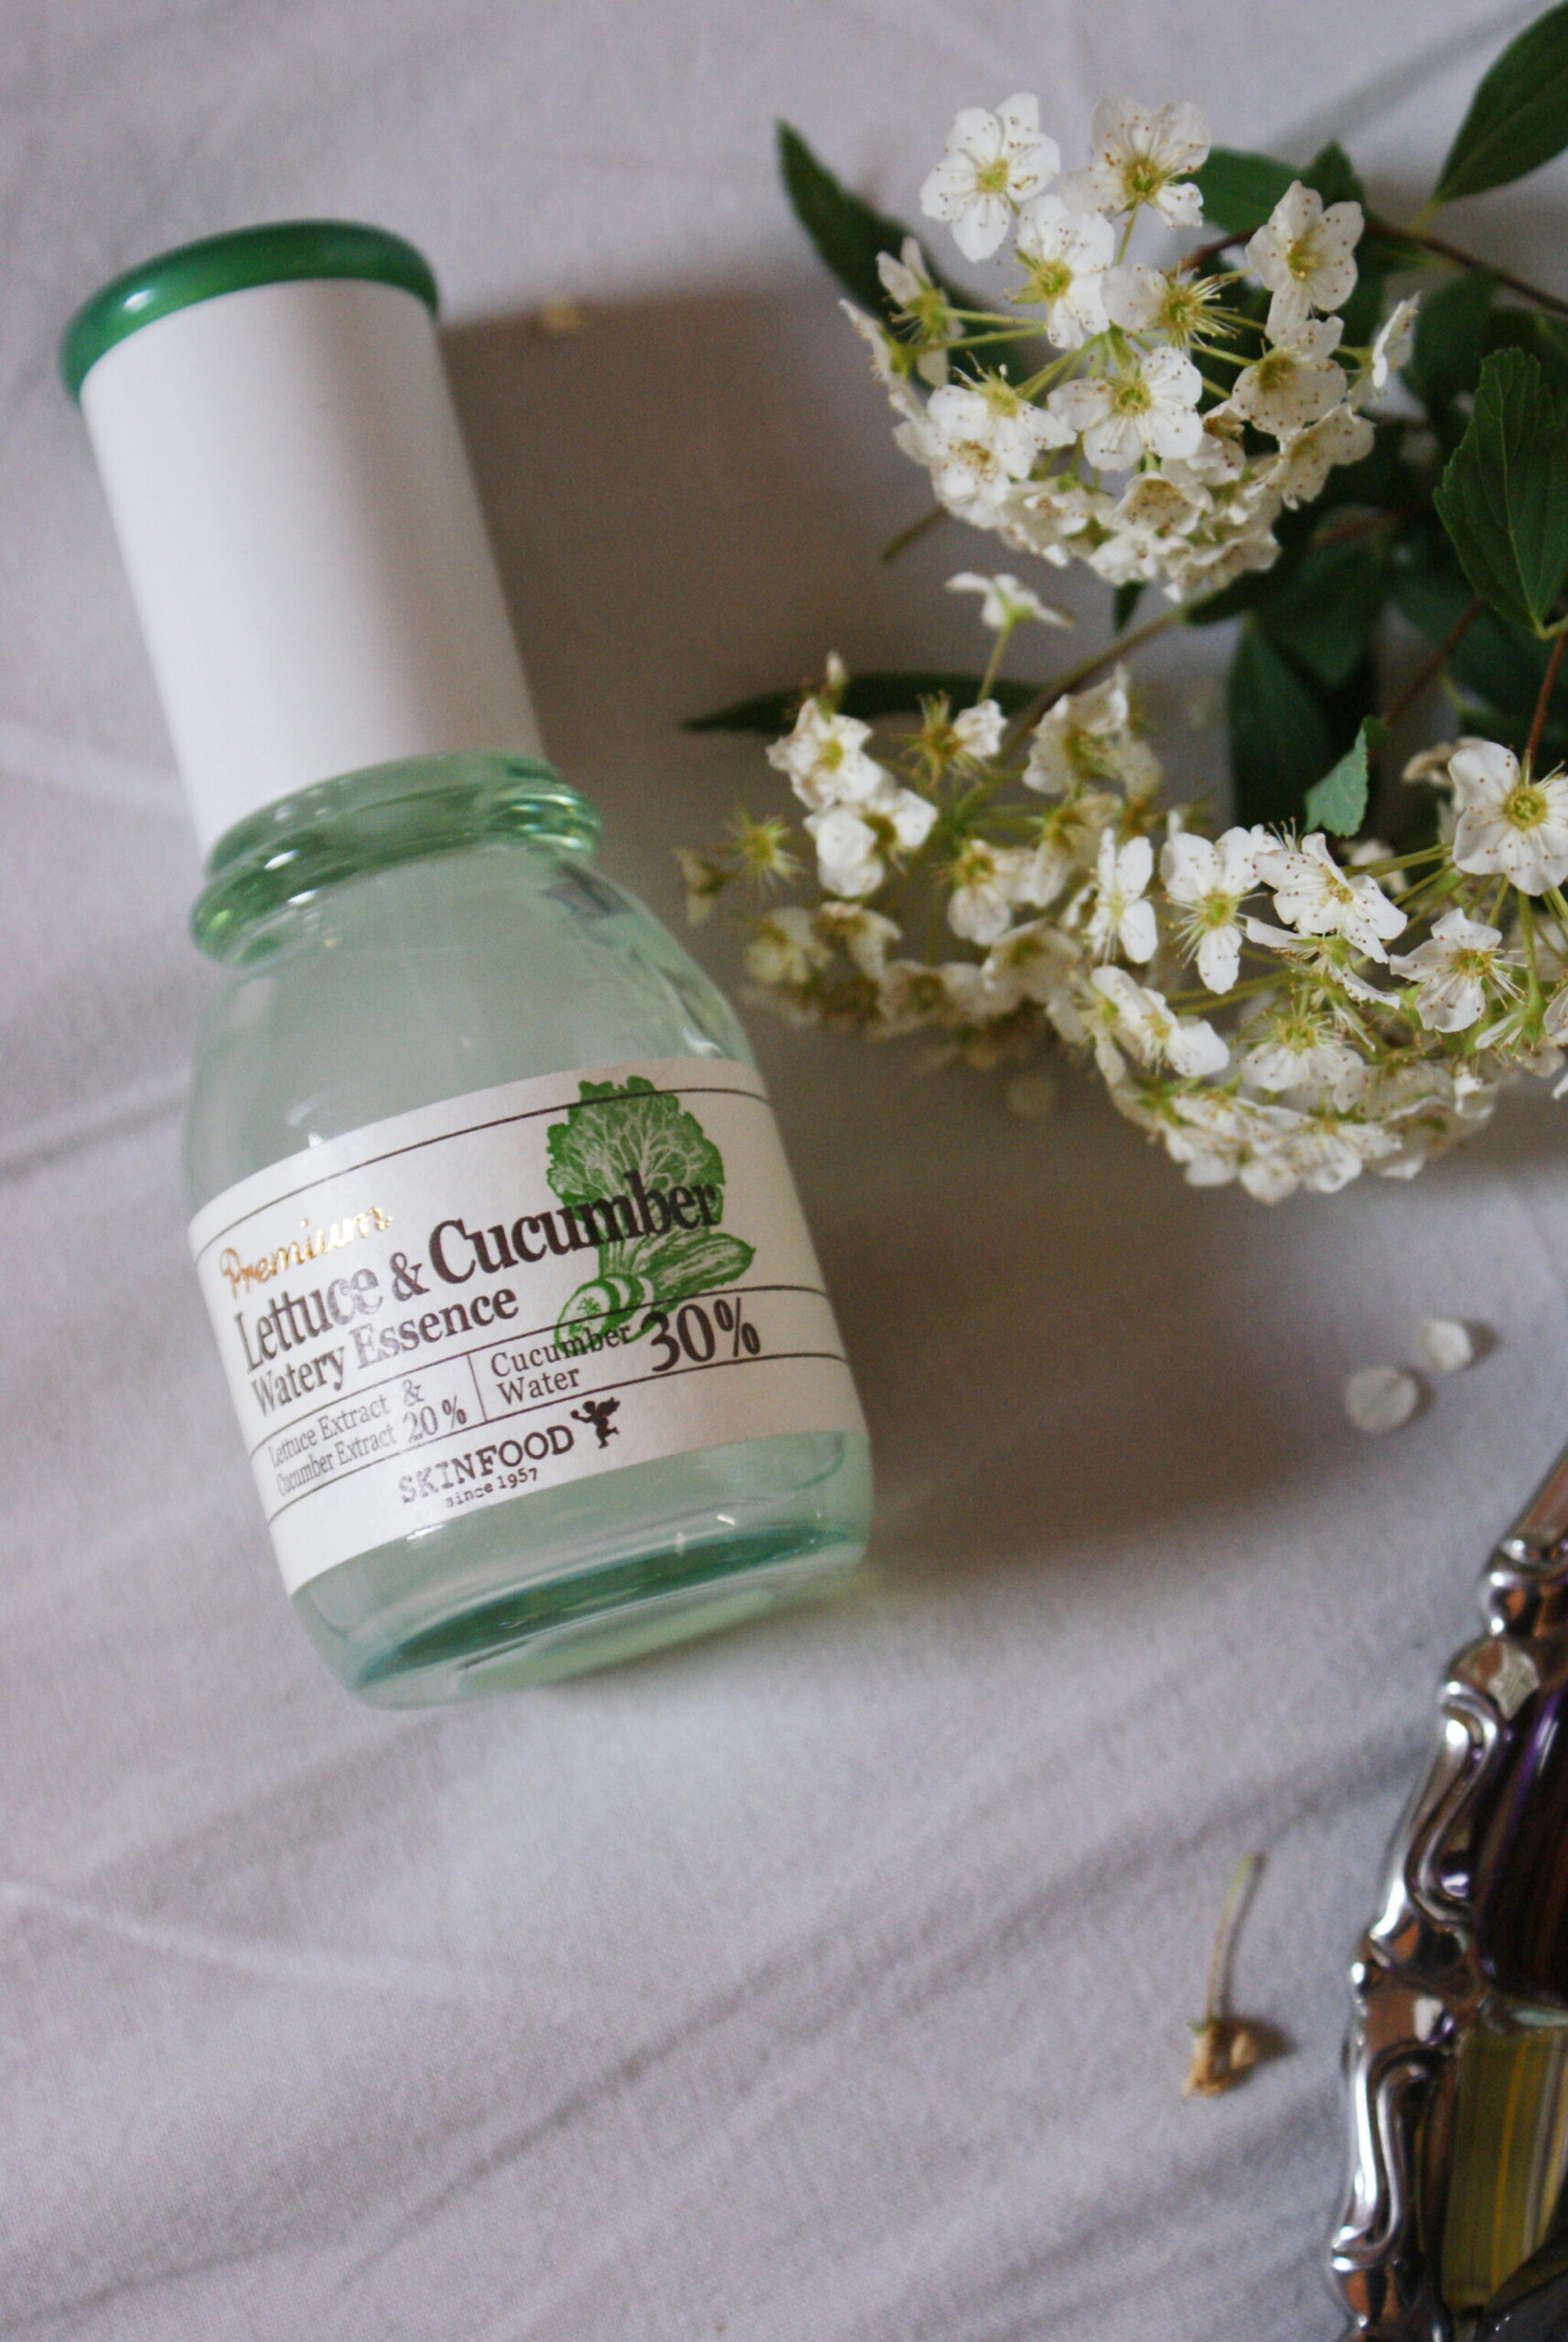 skinfood lettuce essence product review